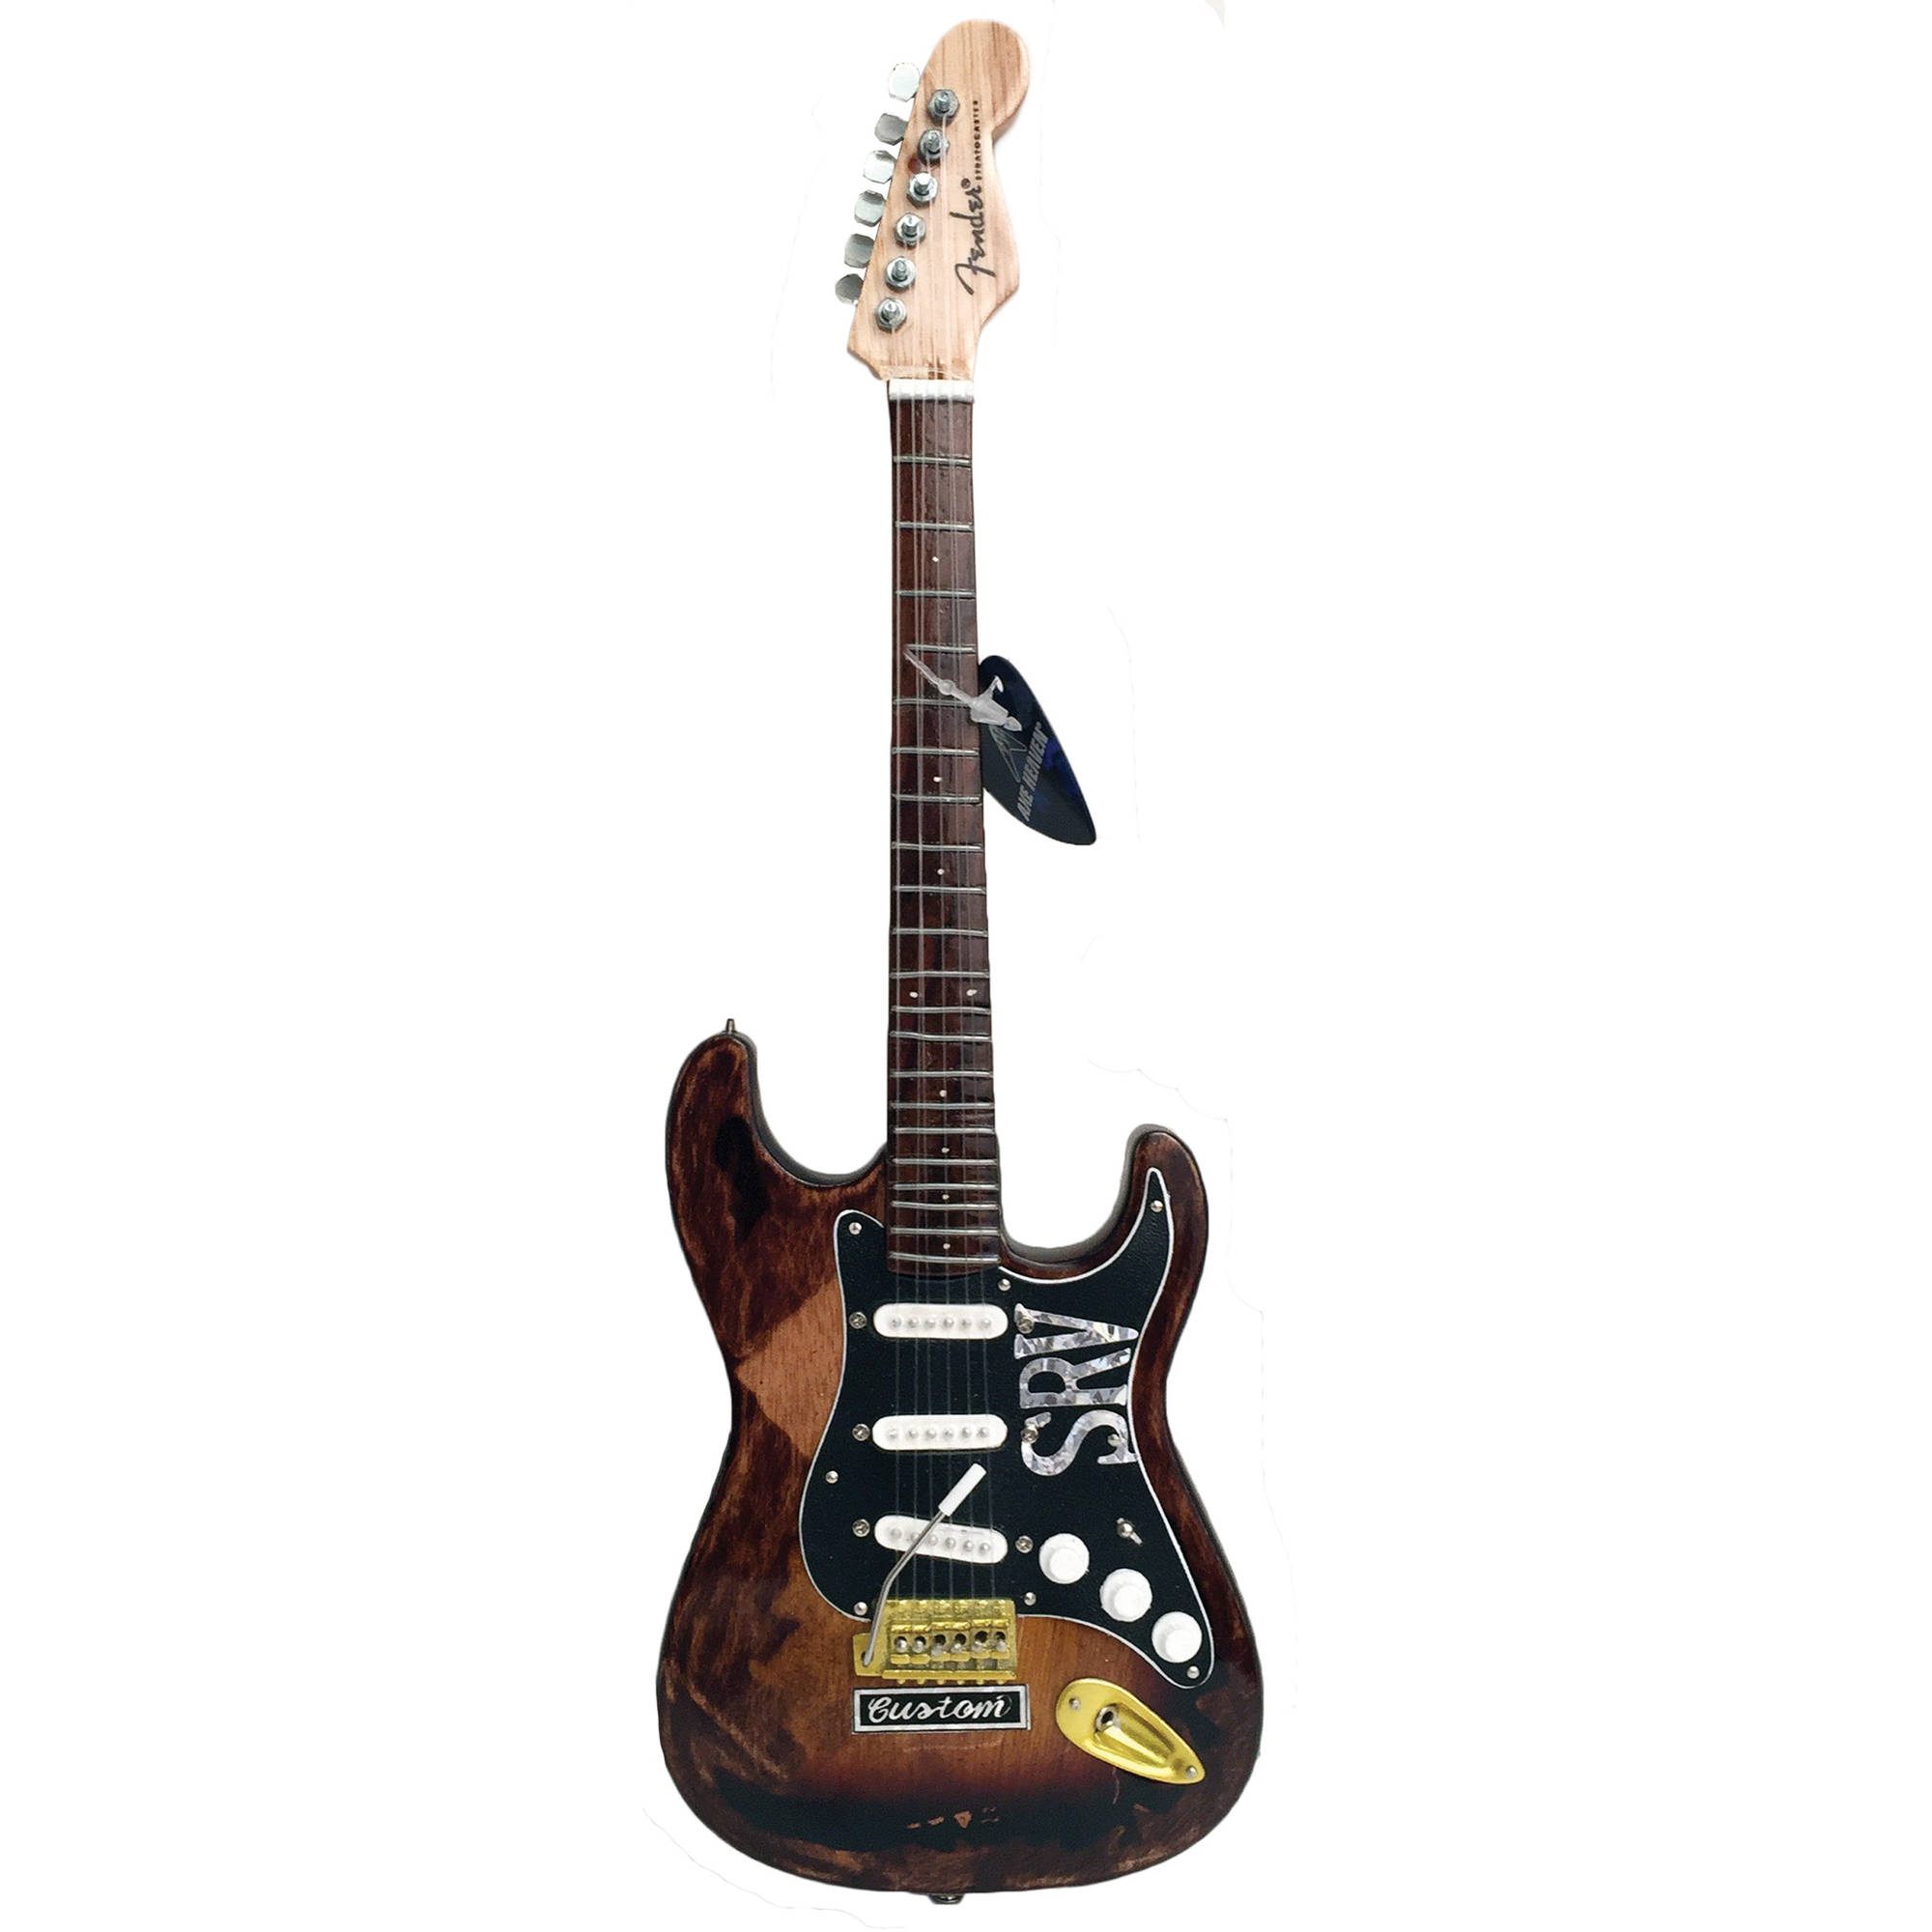 Axe Heaven Stevie Ray Vaughan Custom Mini Guitar Replica Collectible by Axe Heaven